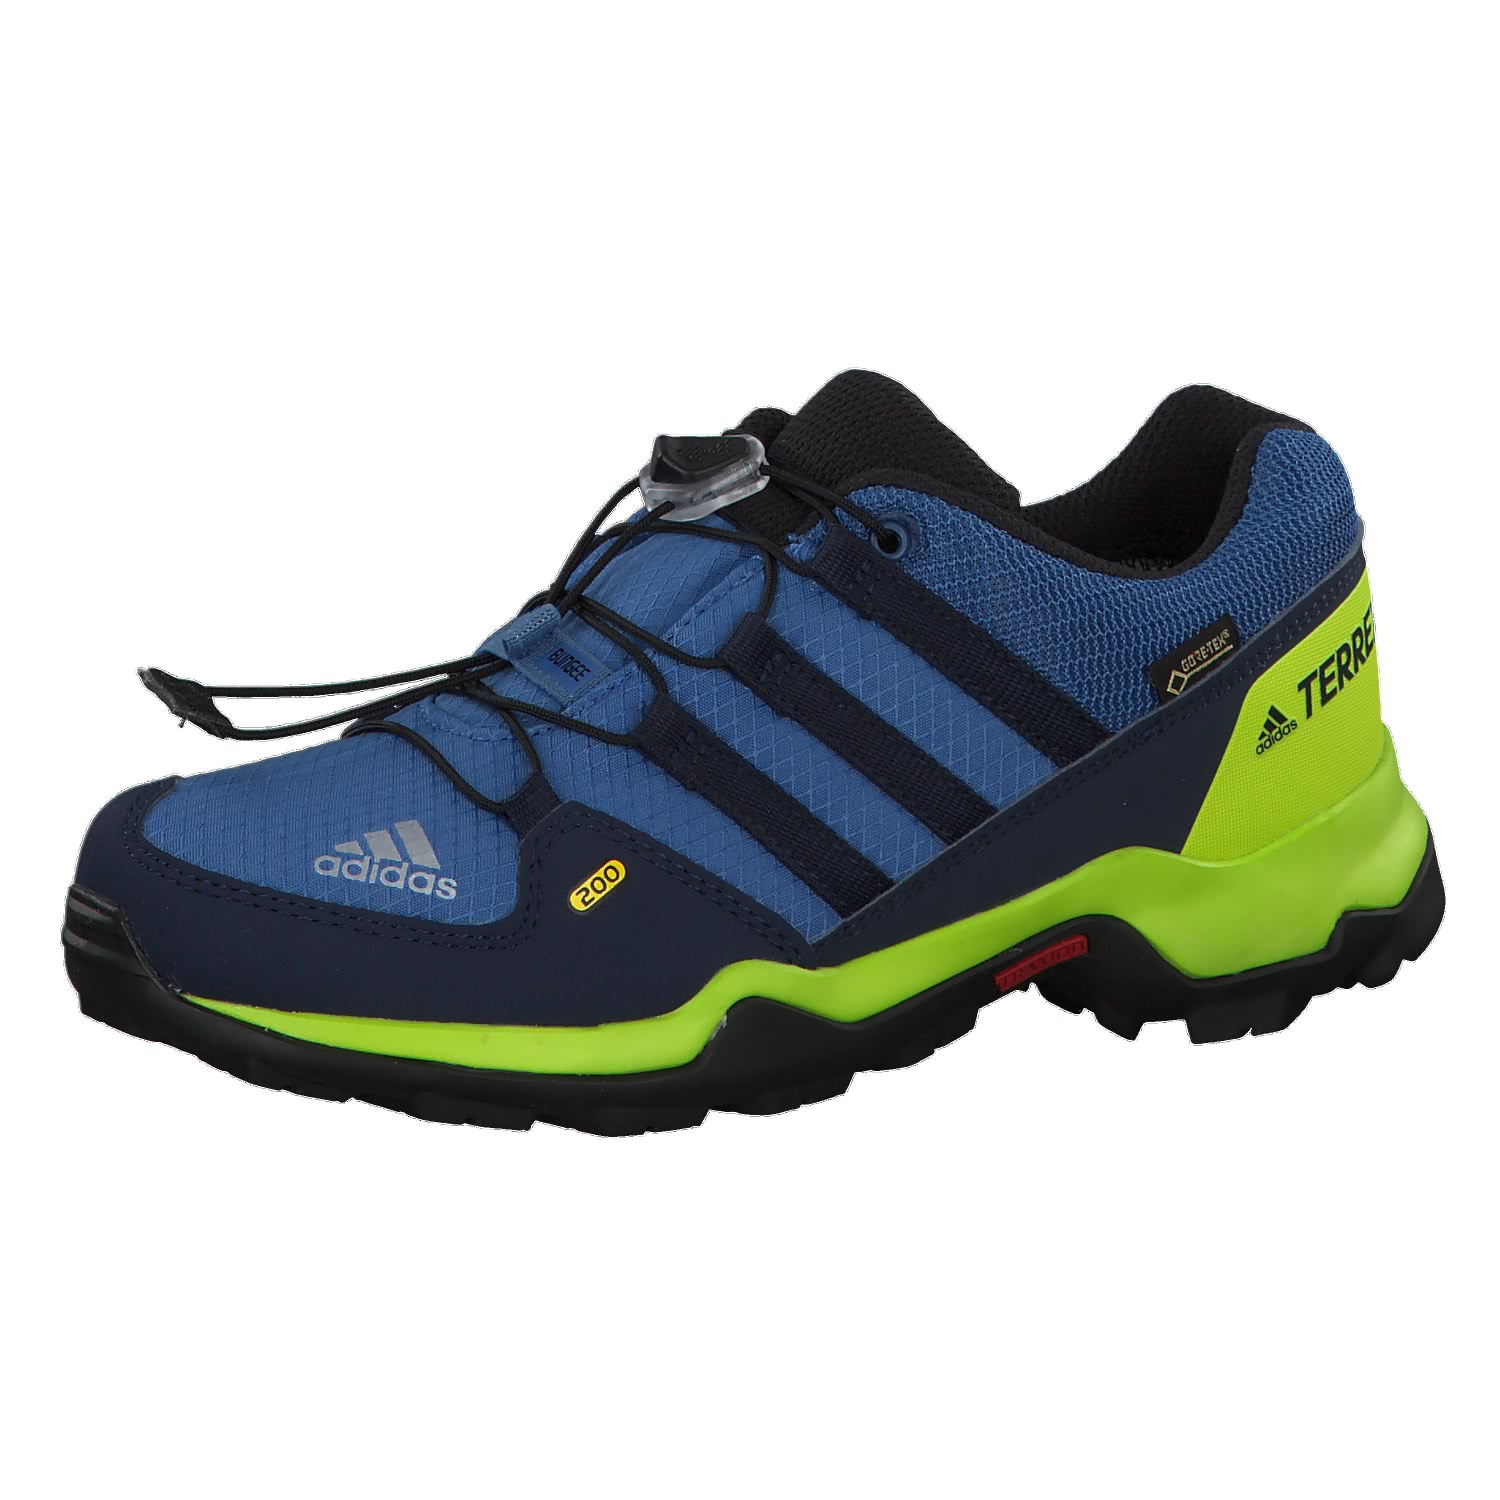 adidas terrex kinder trekkingschuhe gtx k. Black Bedroom Furniture Sets. Home Design Ideas